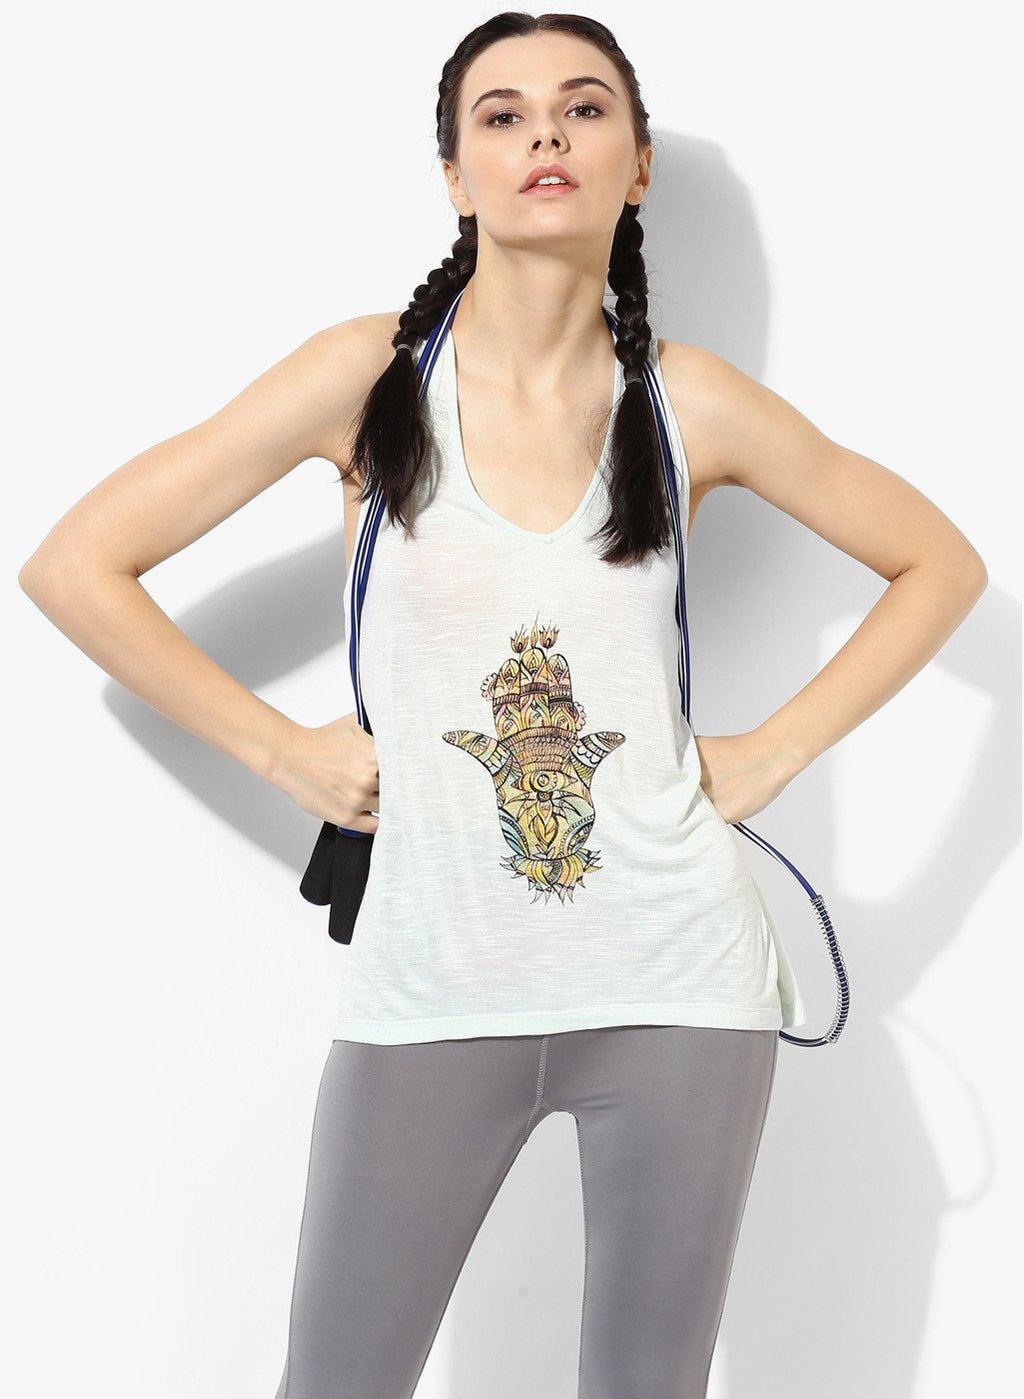 Spiritual Warrior Workout Yoga Athleisure Racerback Tank Hamsa